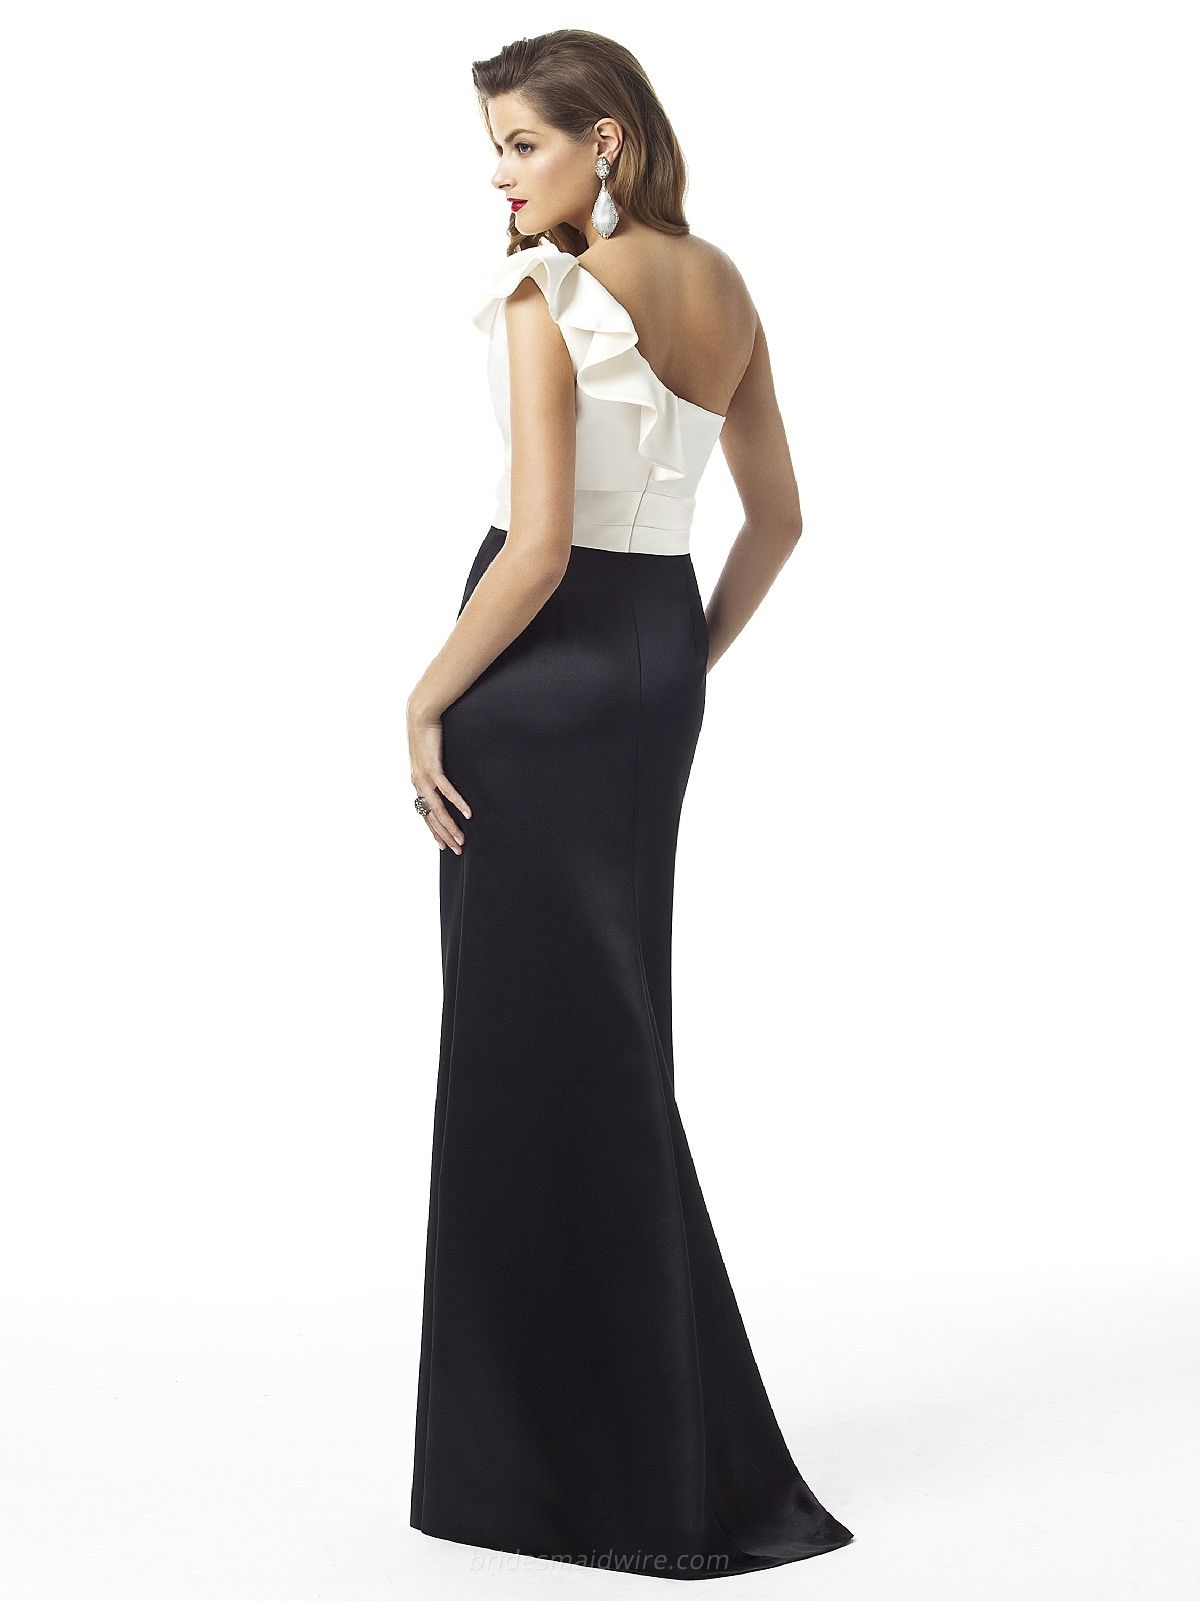 Black And White Full Length Dress And 10 Great Ideas ...